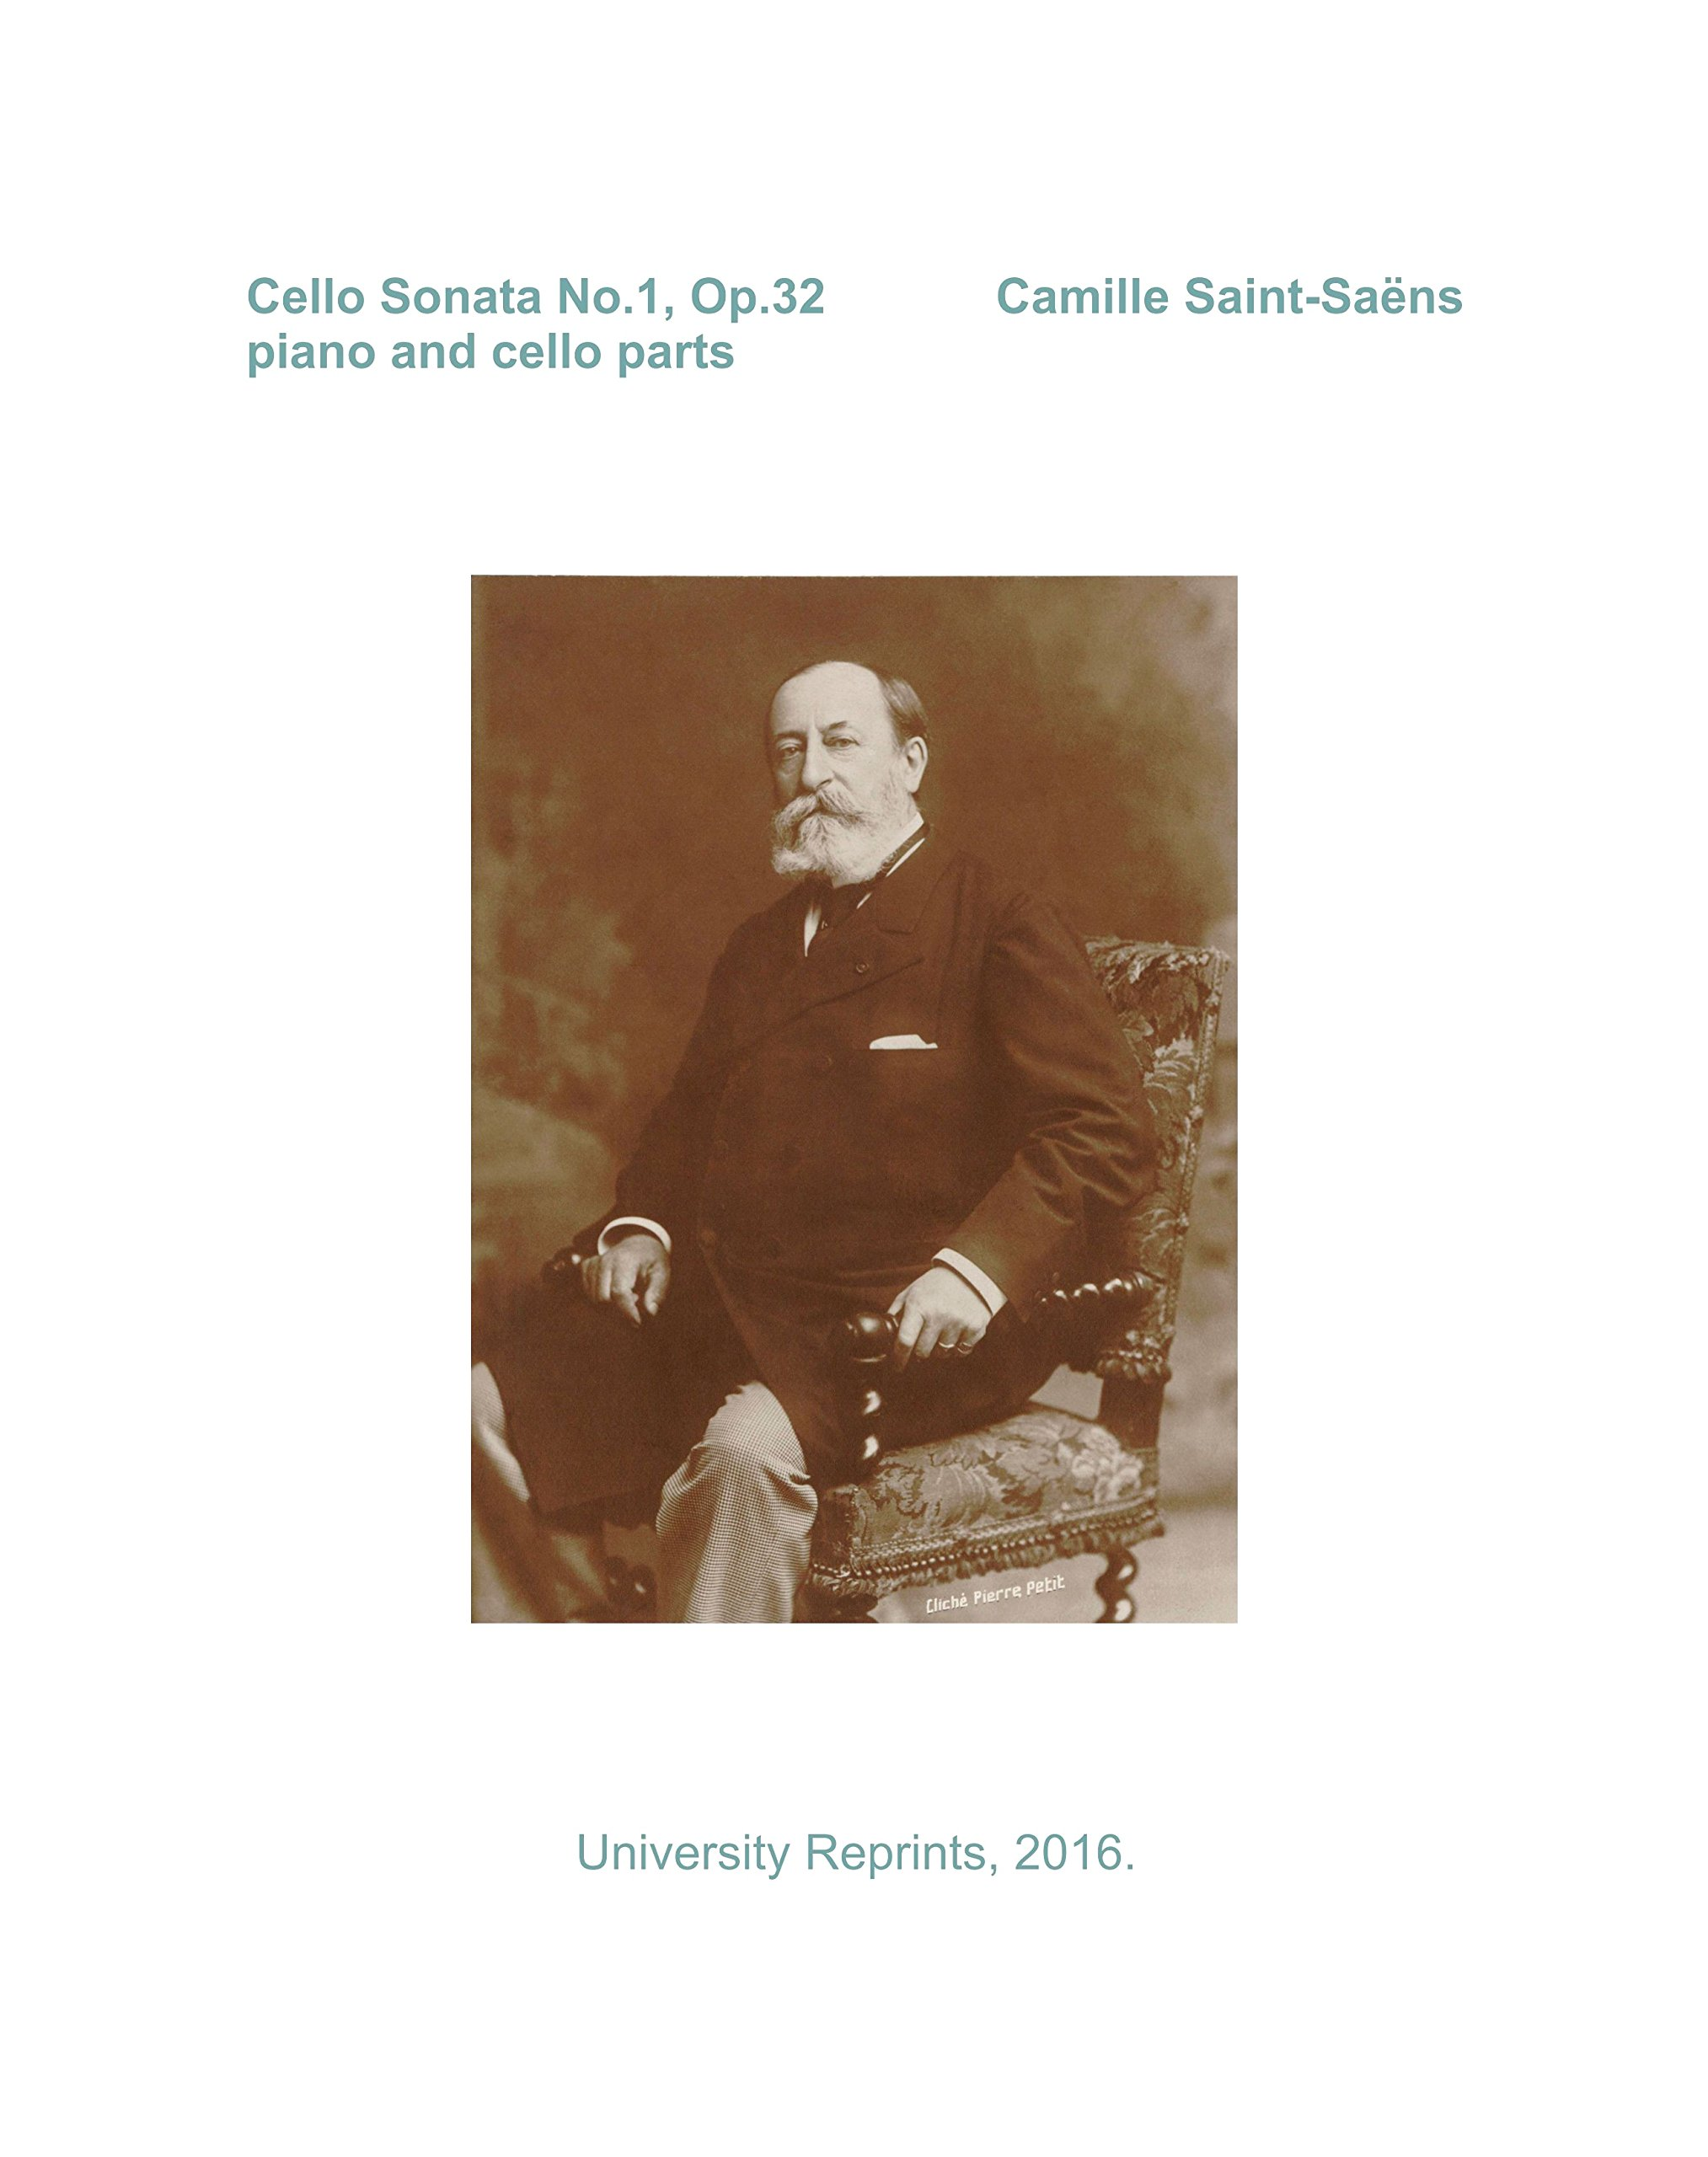 Cello Sonata No. 1, Op. 32 by Camille Saint-Saens. Piano Score and Cello Parts. (Quality, Student Loose Leaf Facsimile Edition, 2012) pdf